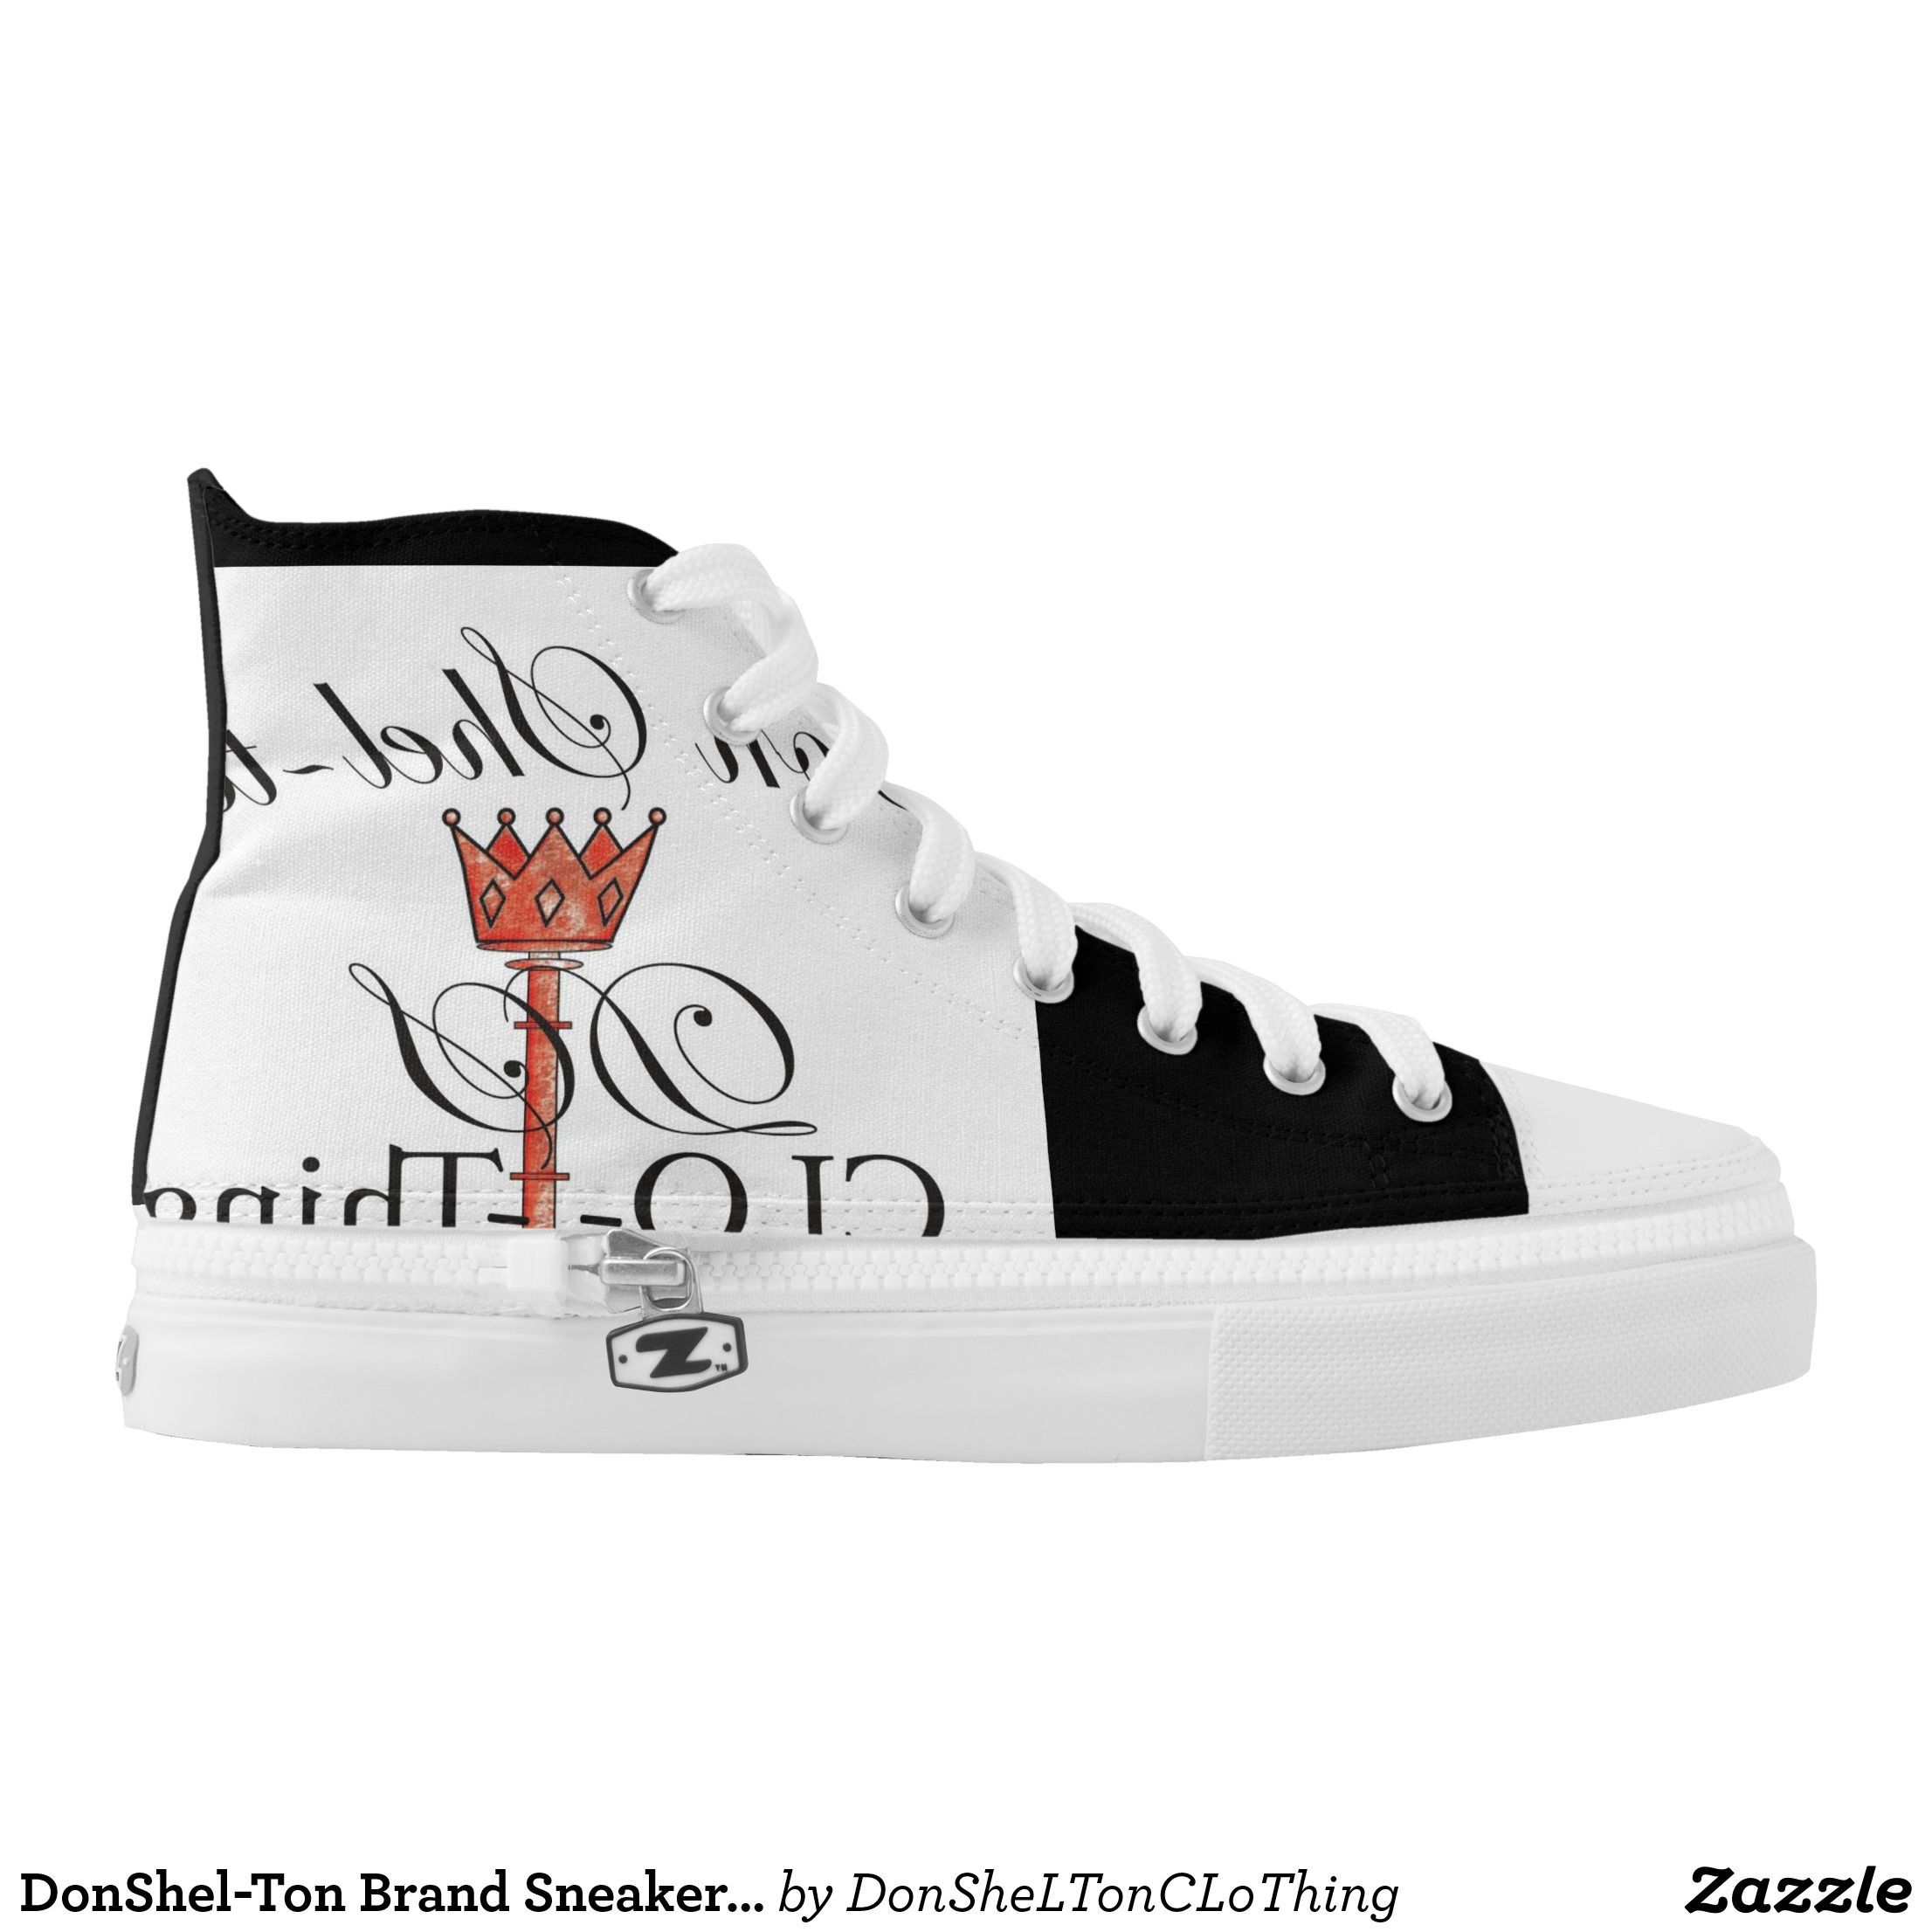 Brands Sneakers And Brands Clothing Sales With High